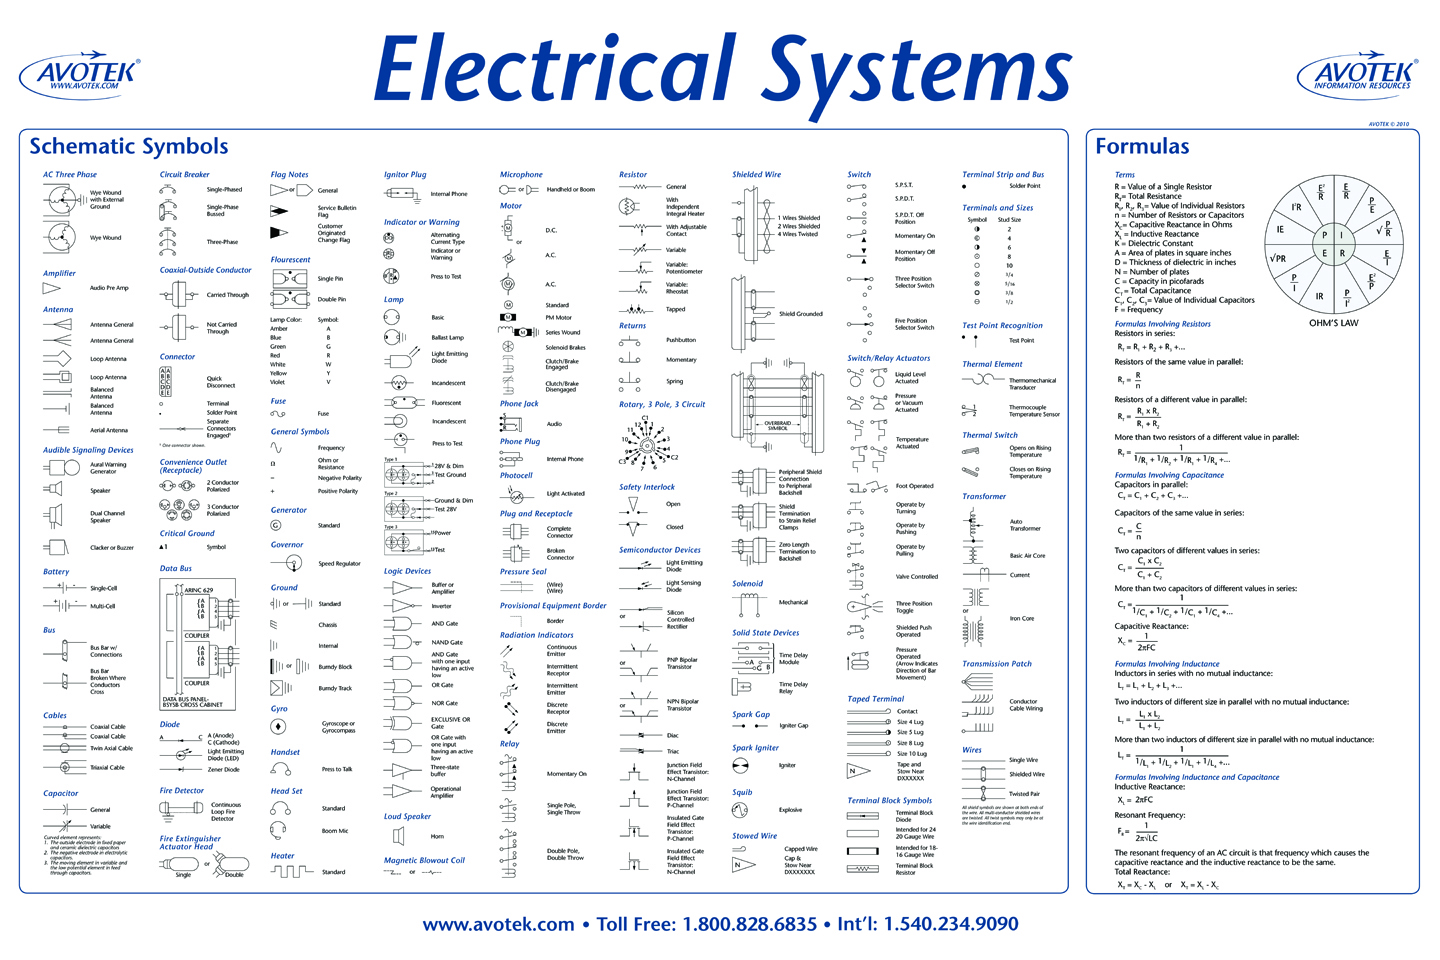 Basic Electrical Wiring Symbols - Wiring Diagram General